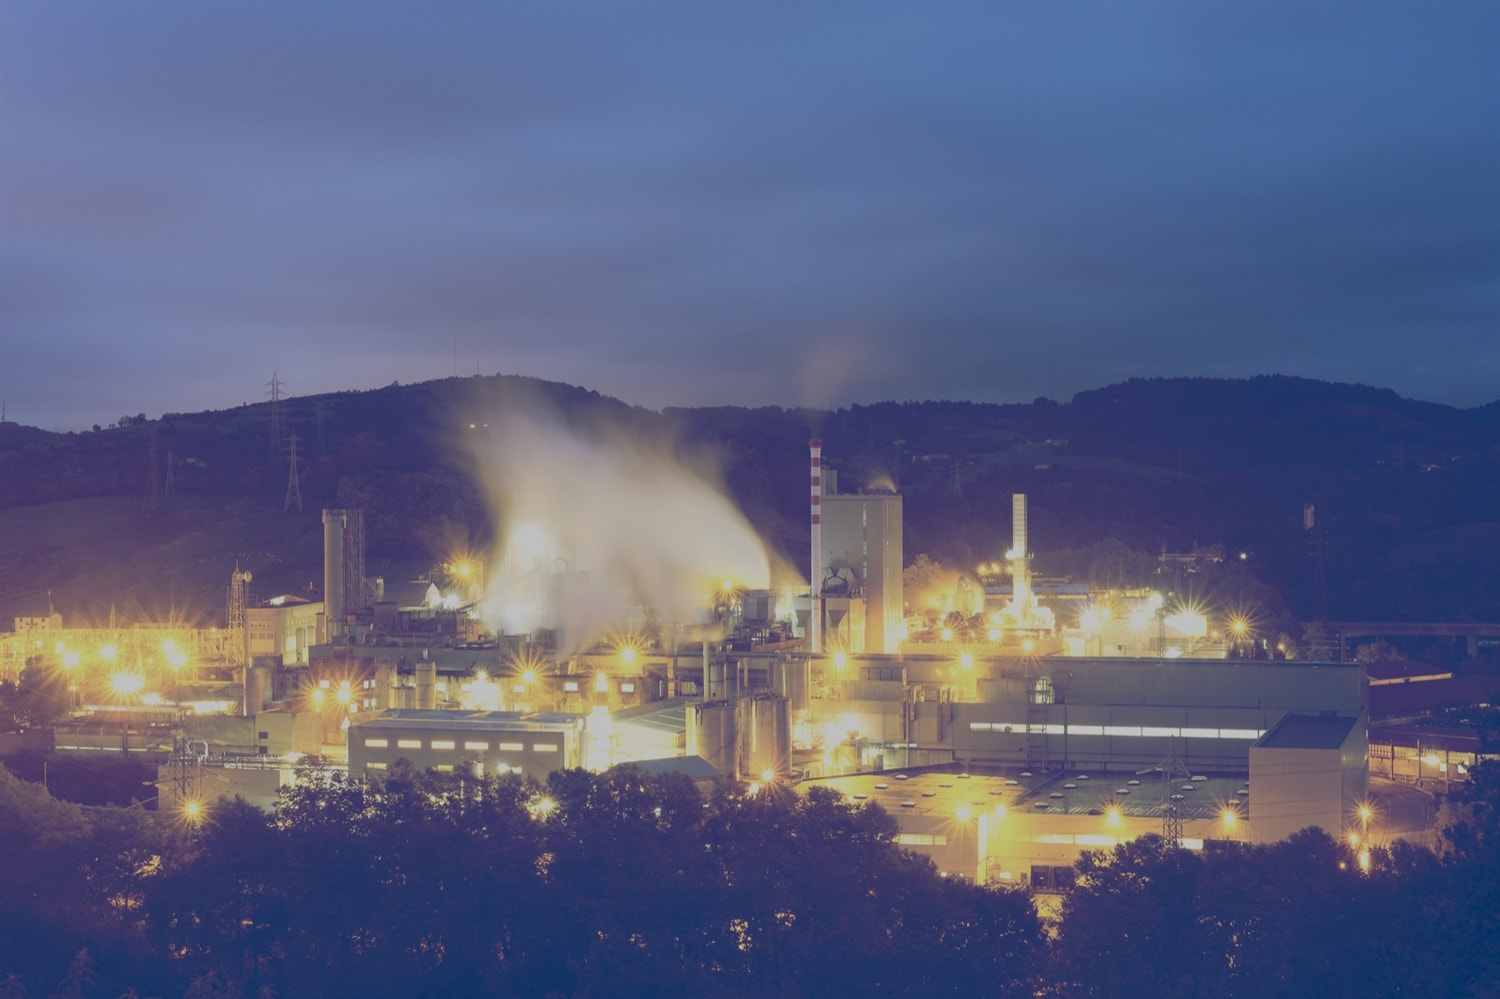 Panoramic view of an oil refinery lit up at night.